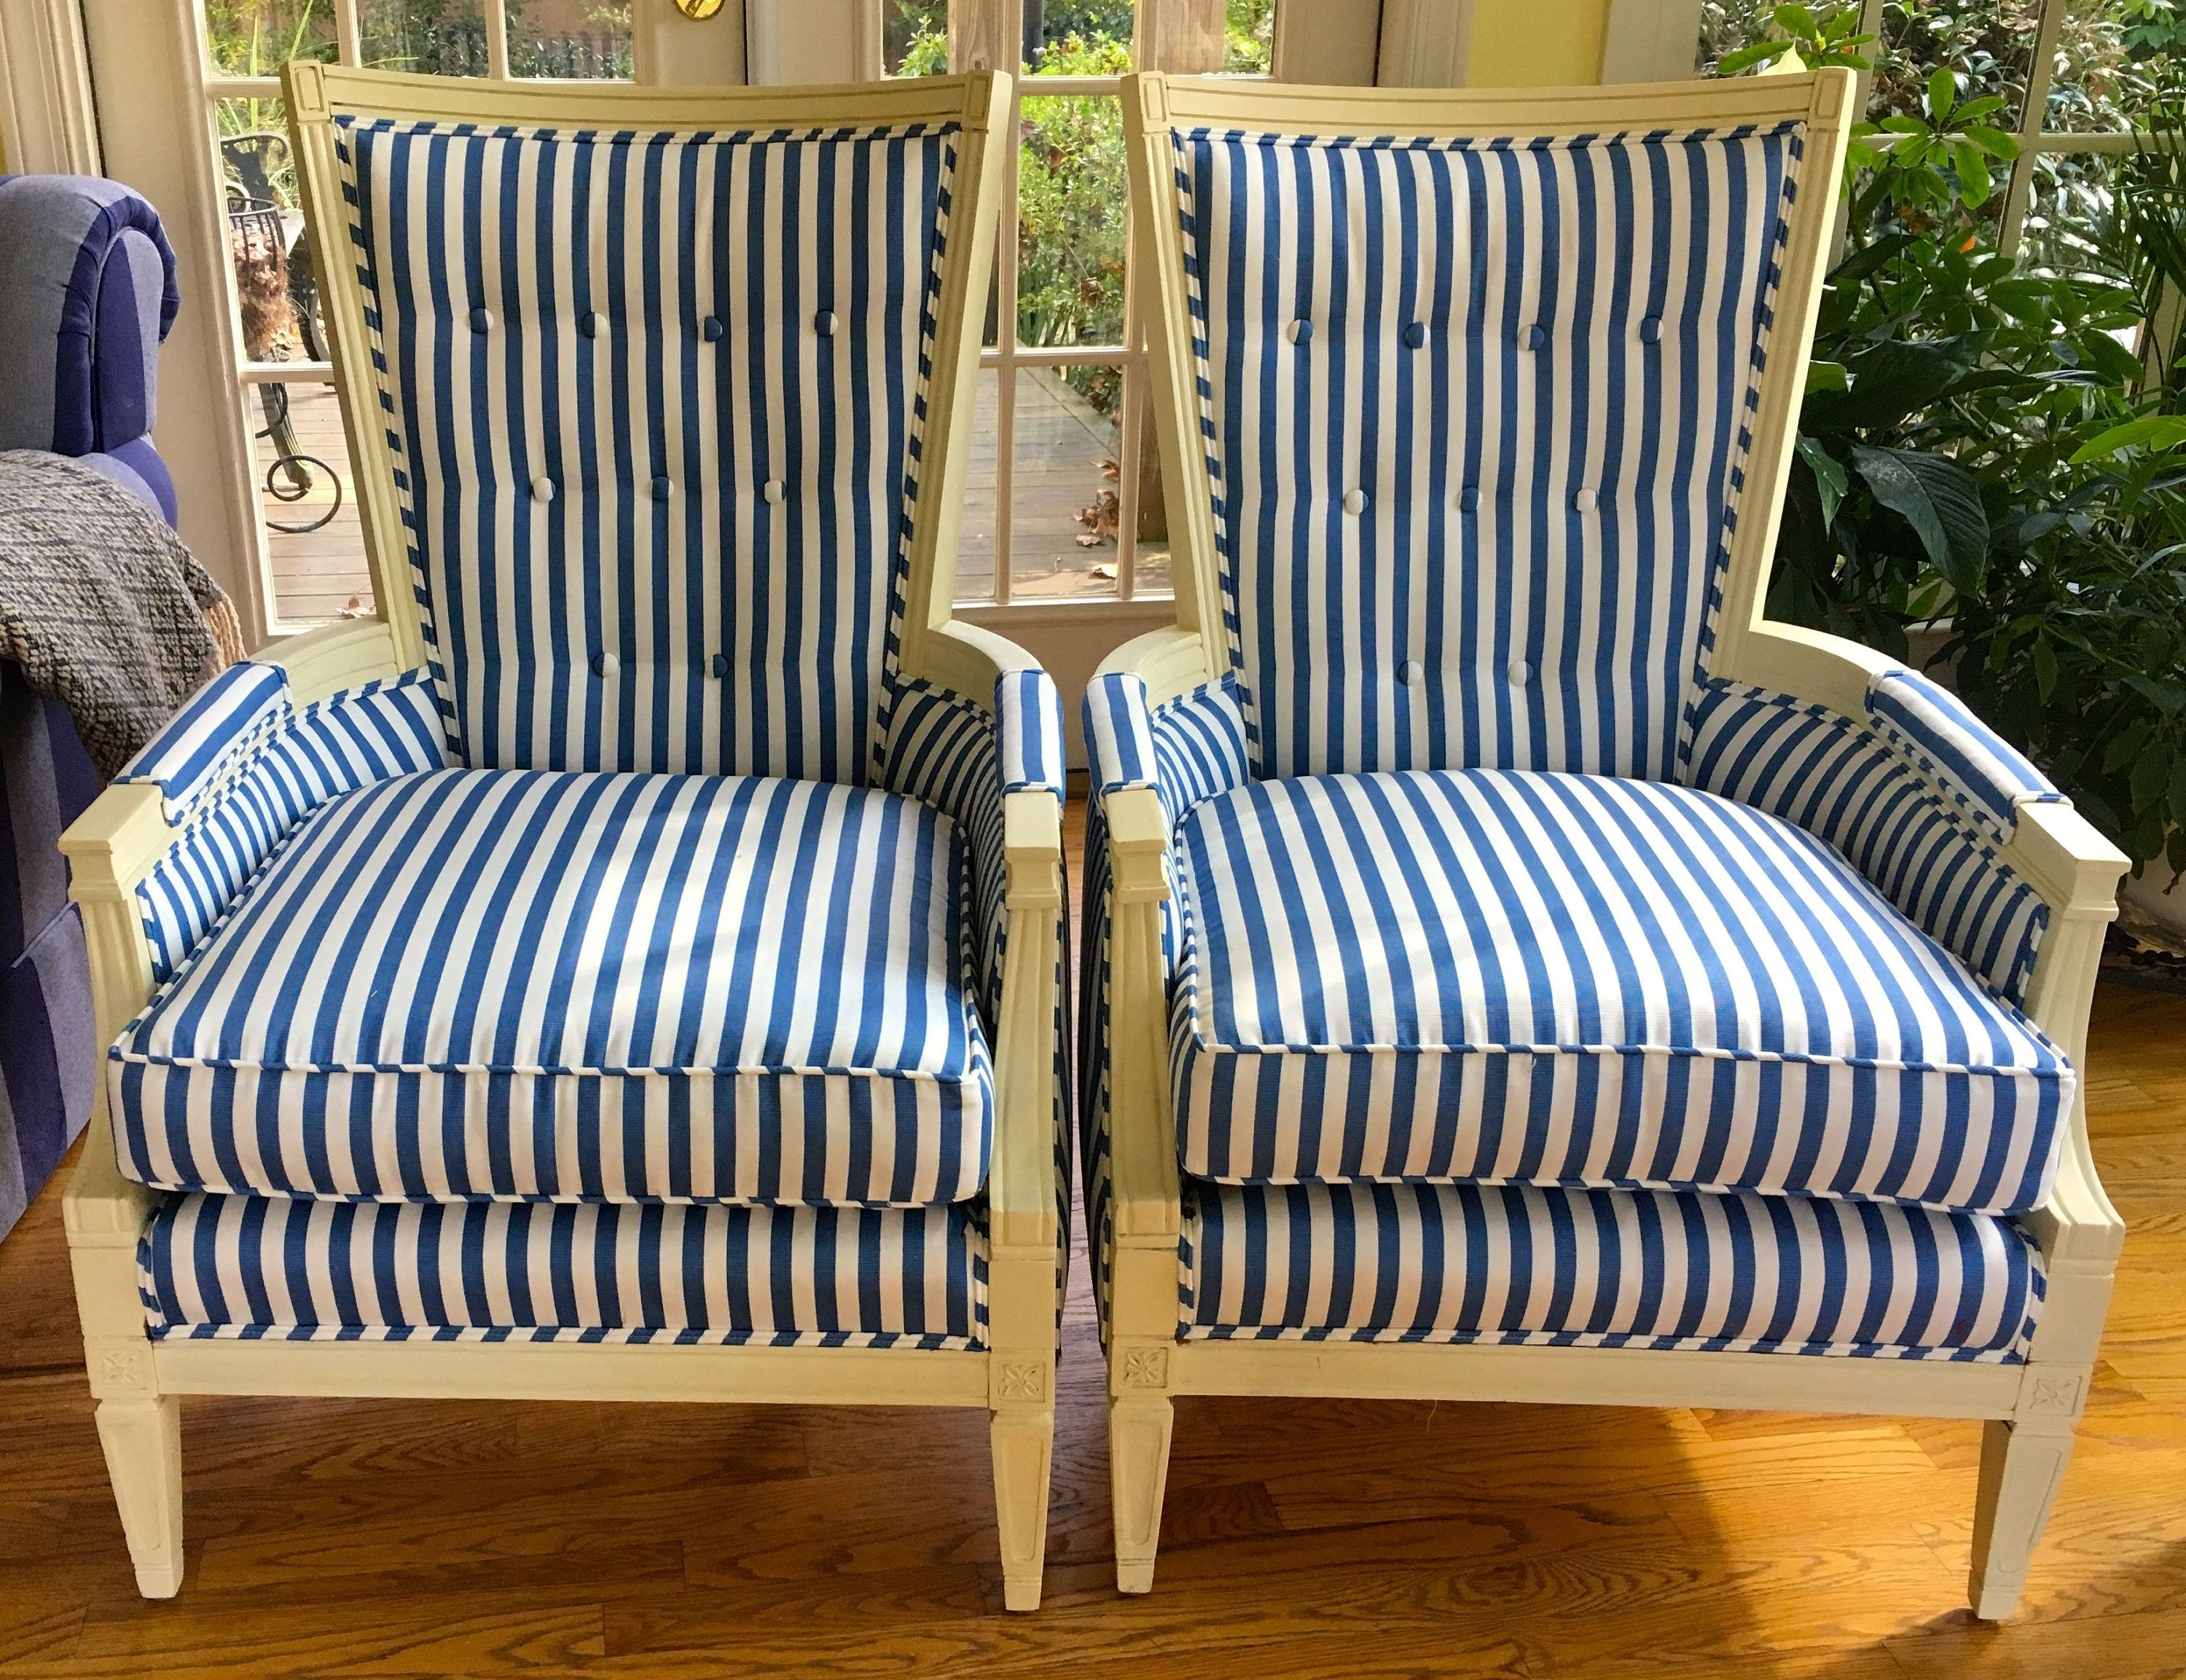 Pair of French Style Blue & White Striped Chairs with